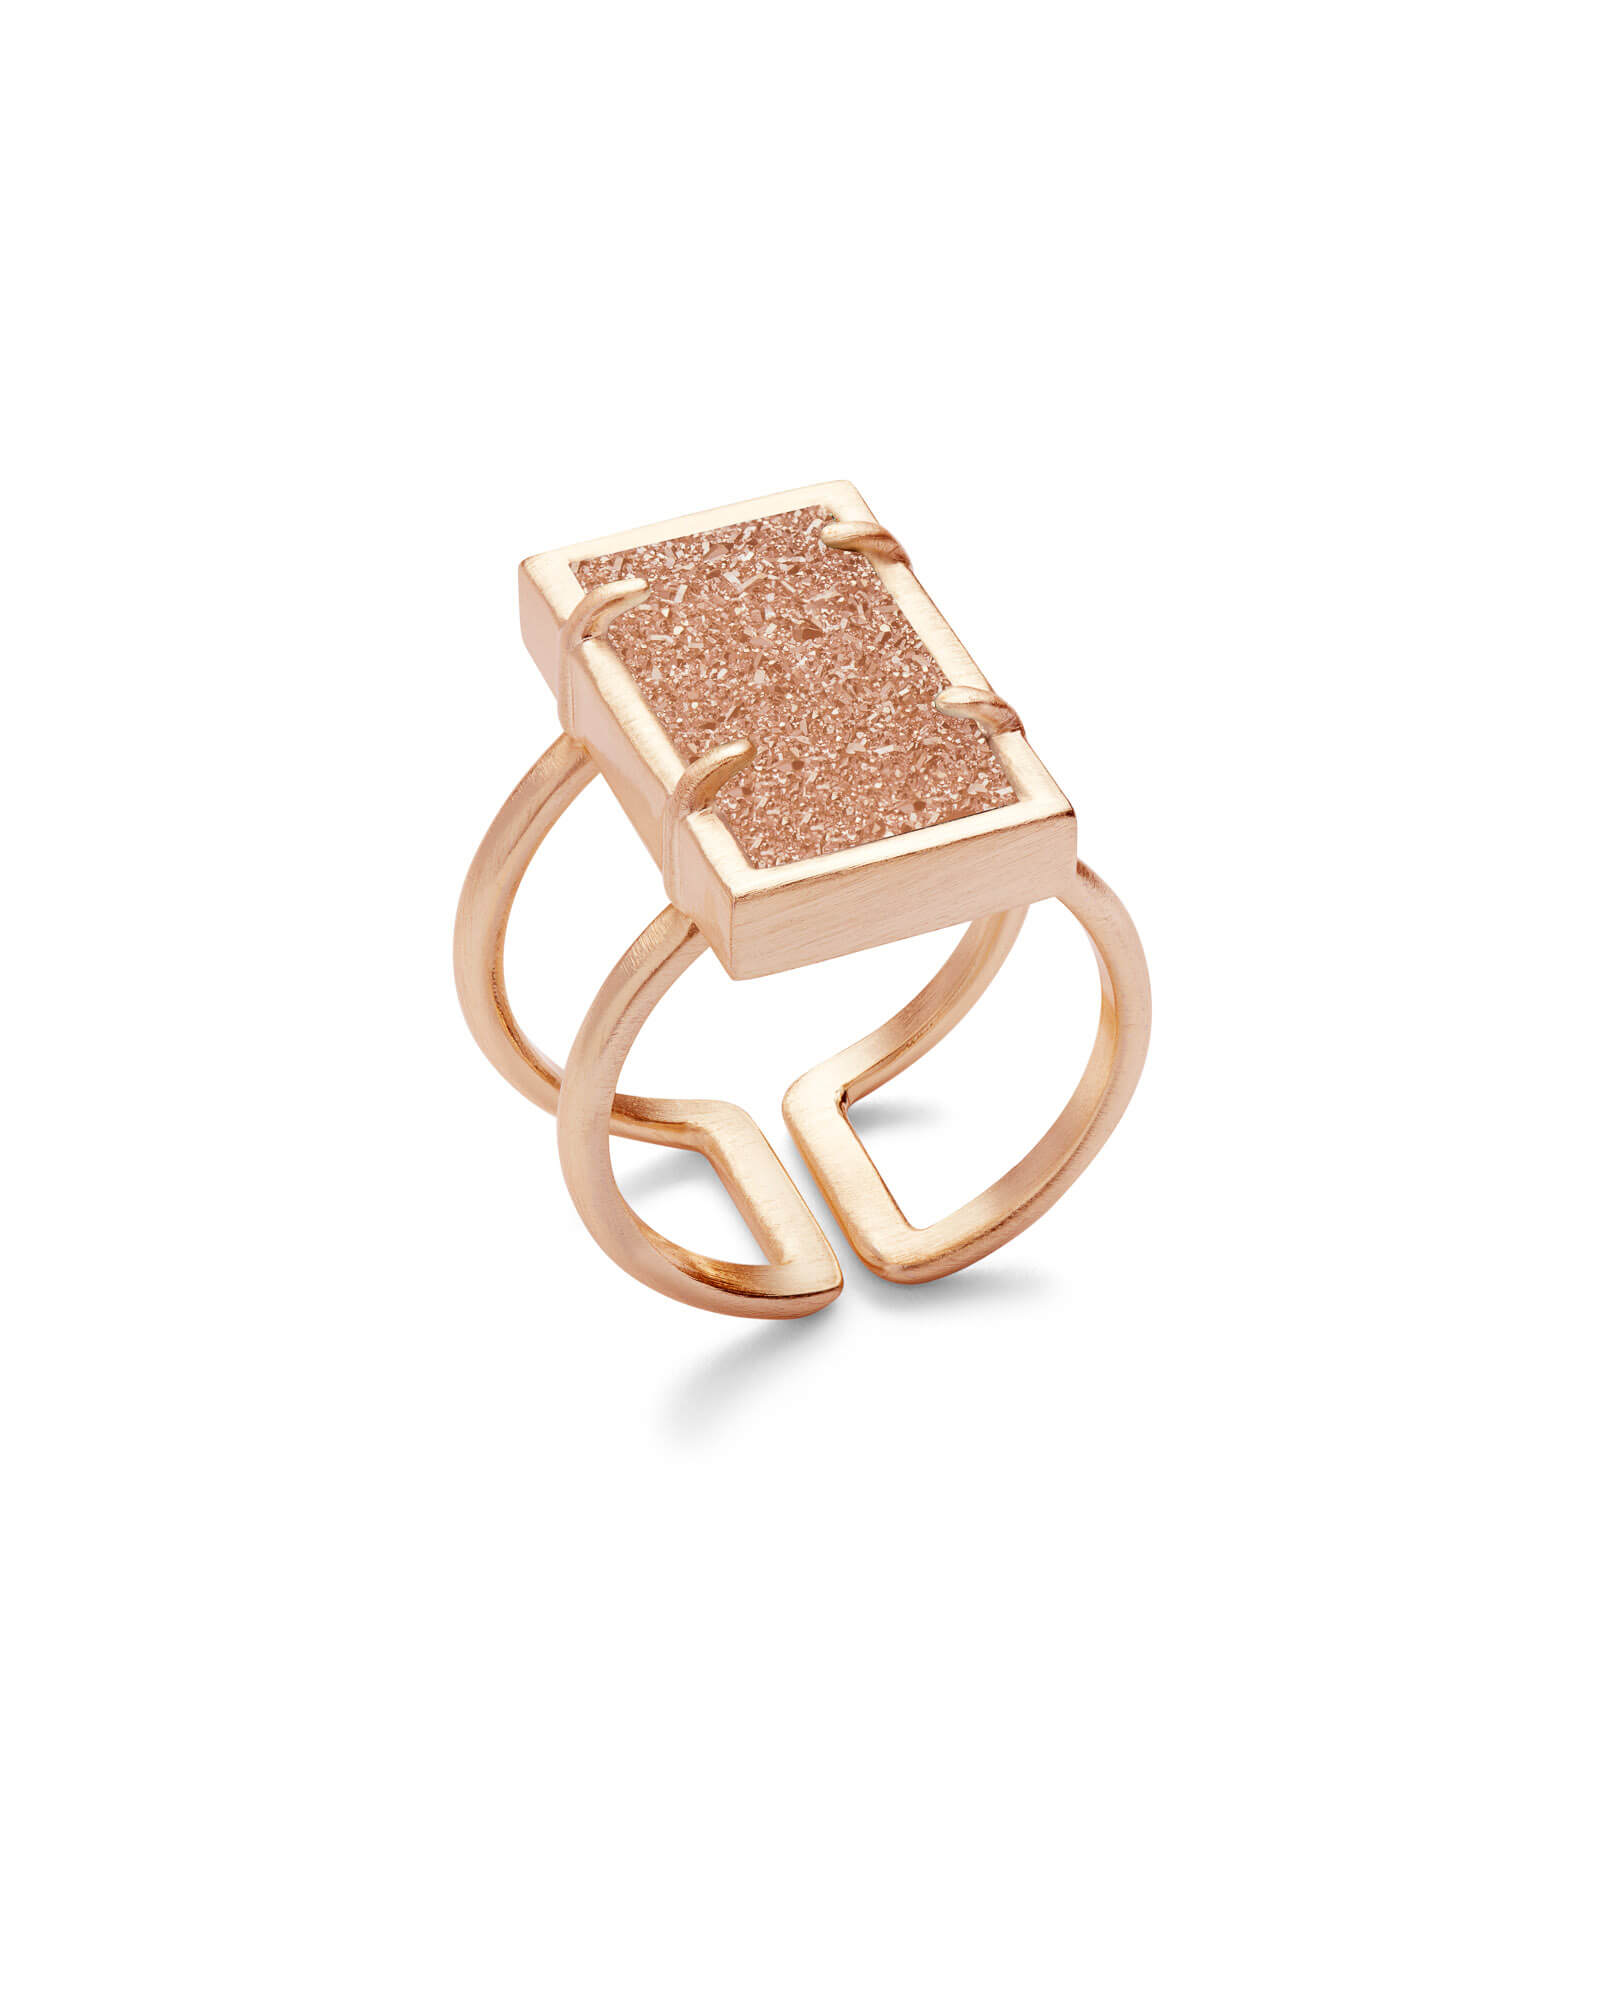 Lennox Ring in Rose Gold